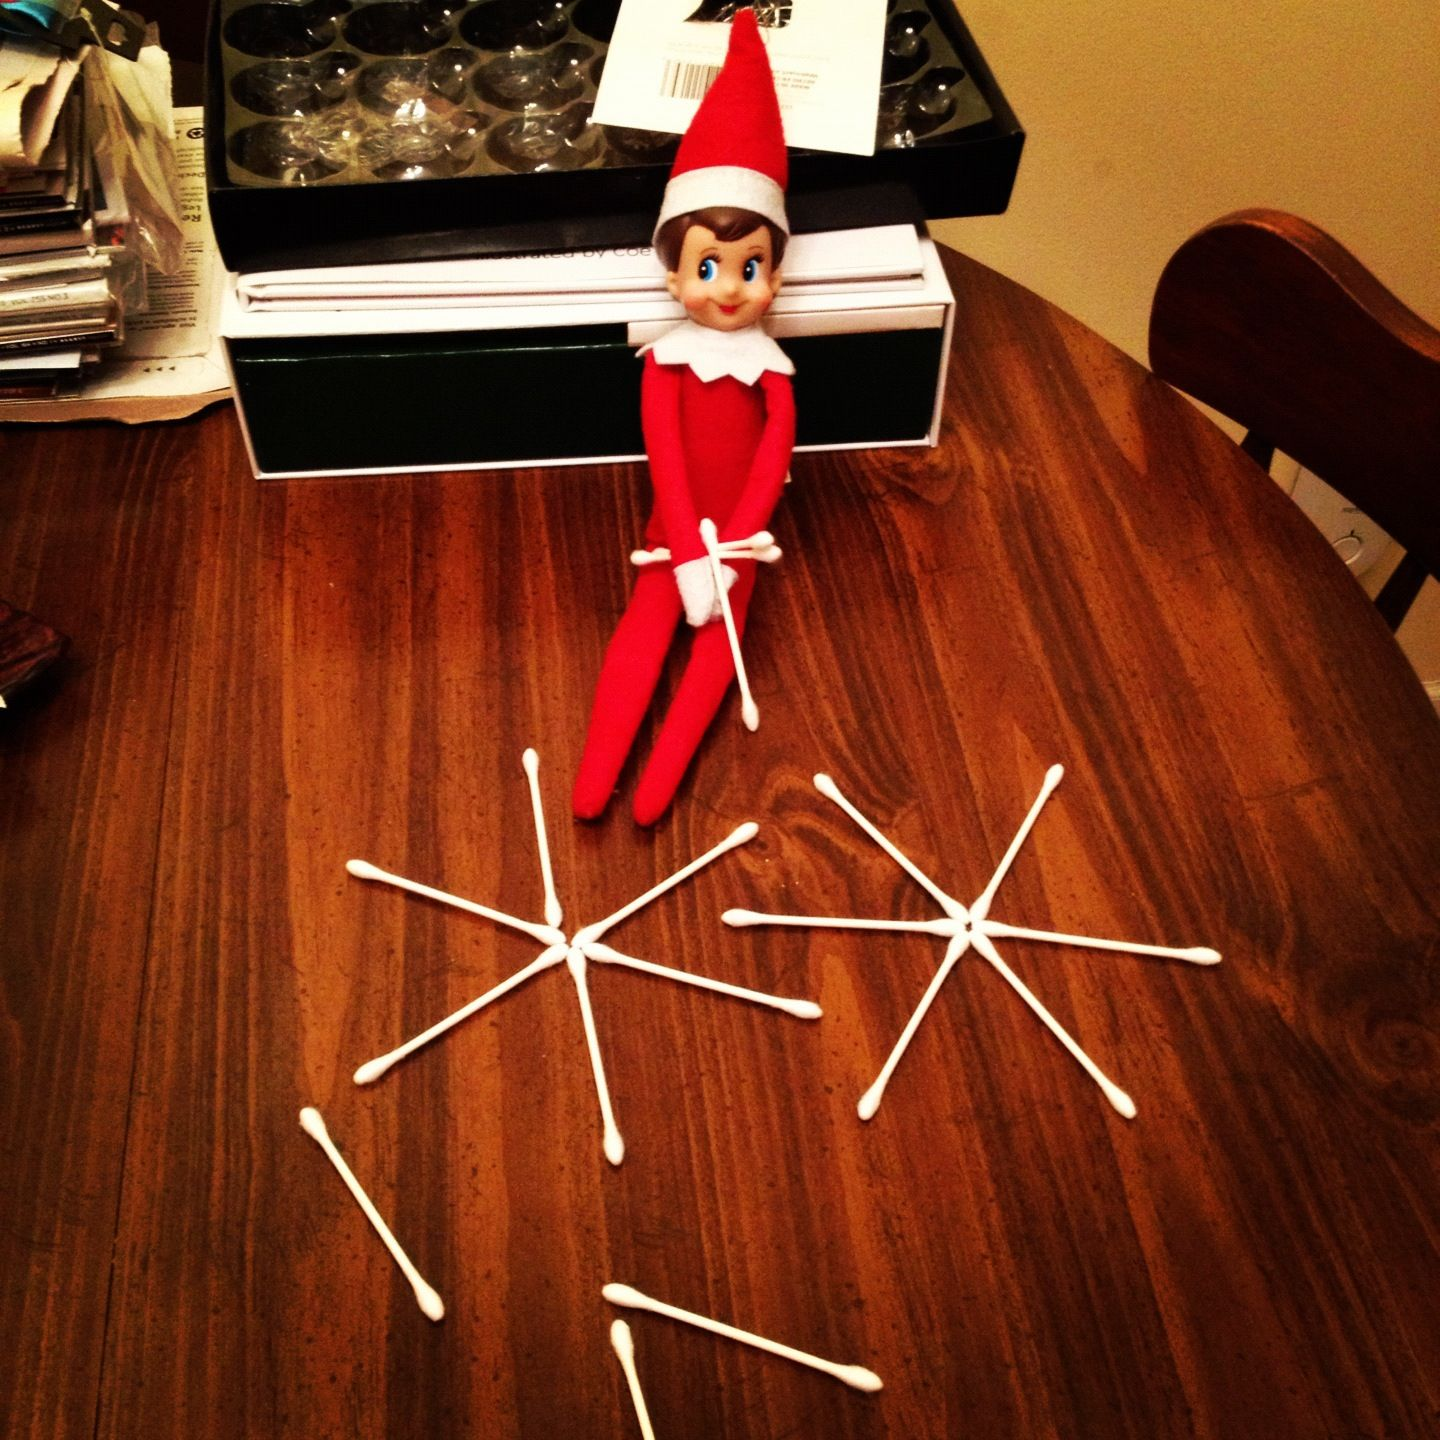 Day 10 12 10 12 Ellie The Elf In The Kitchen Making Snowflakes Out Of Q Tips Haha Elfontheshelf Holiday Decor The Elf Decor